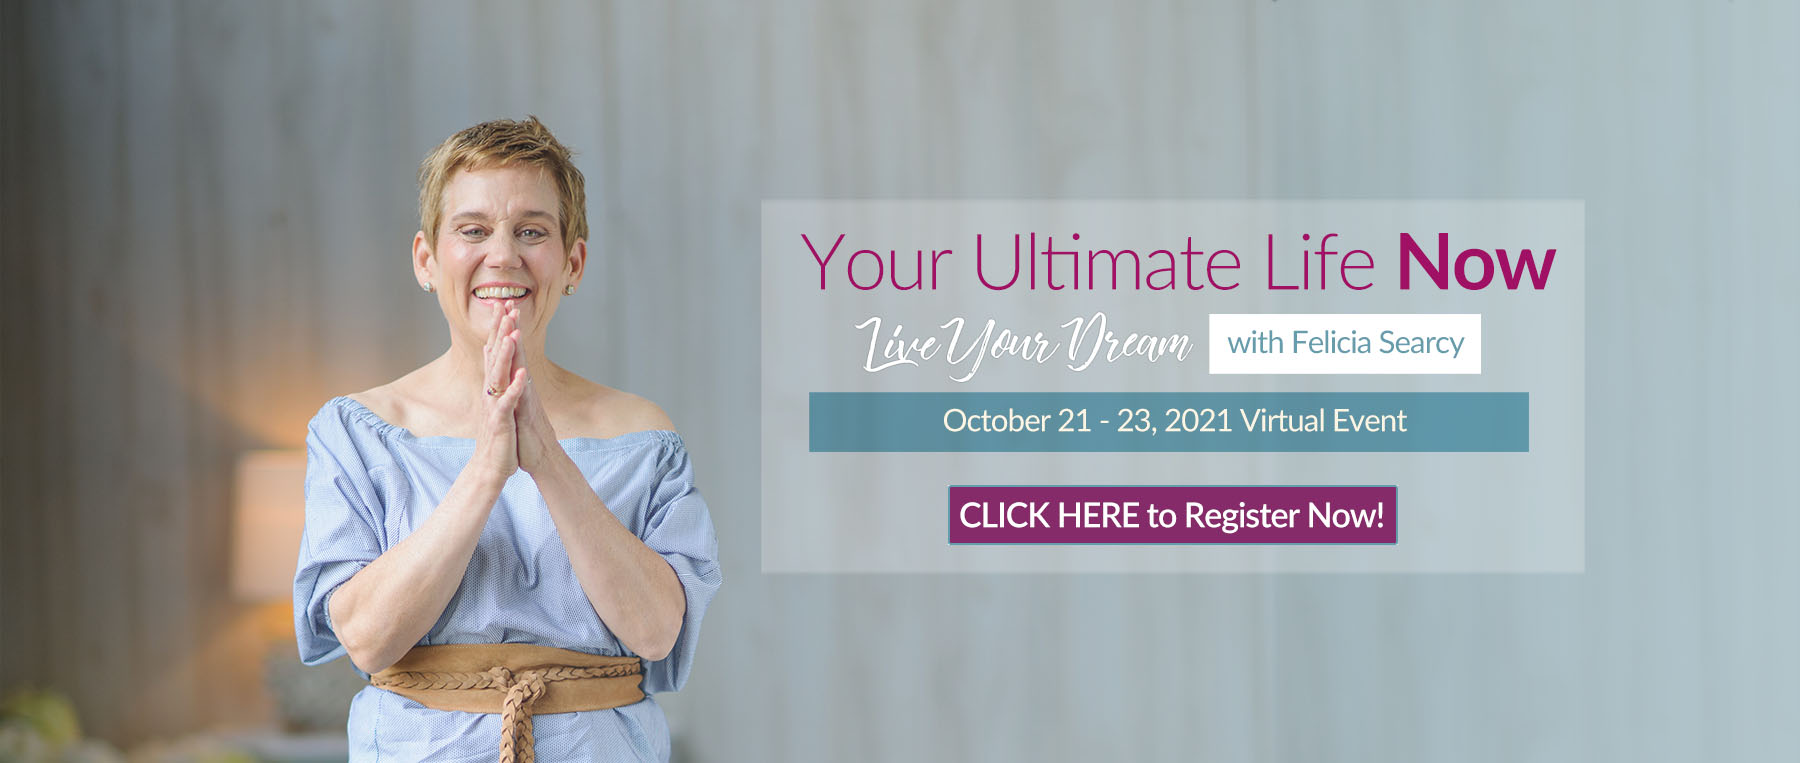 Your Ultimate Life Now - Live Your Dream with Felicia Searcy